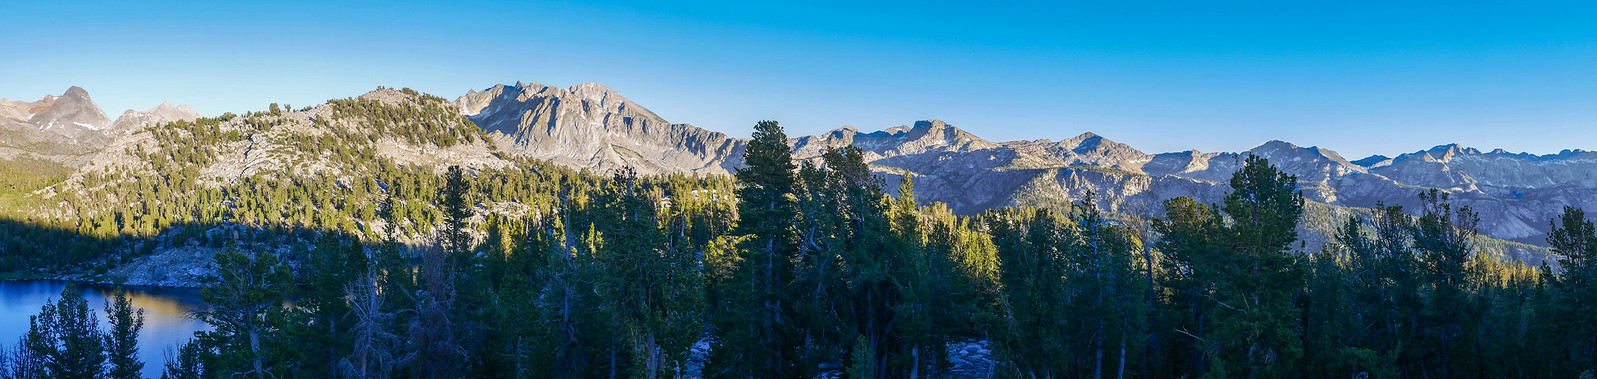 Sunset view on the Silver Divide